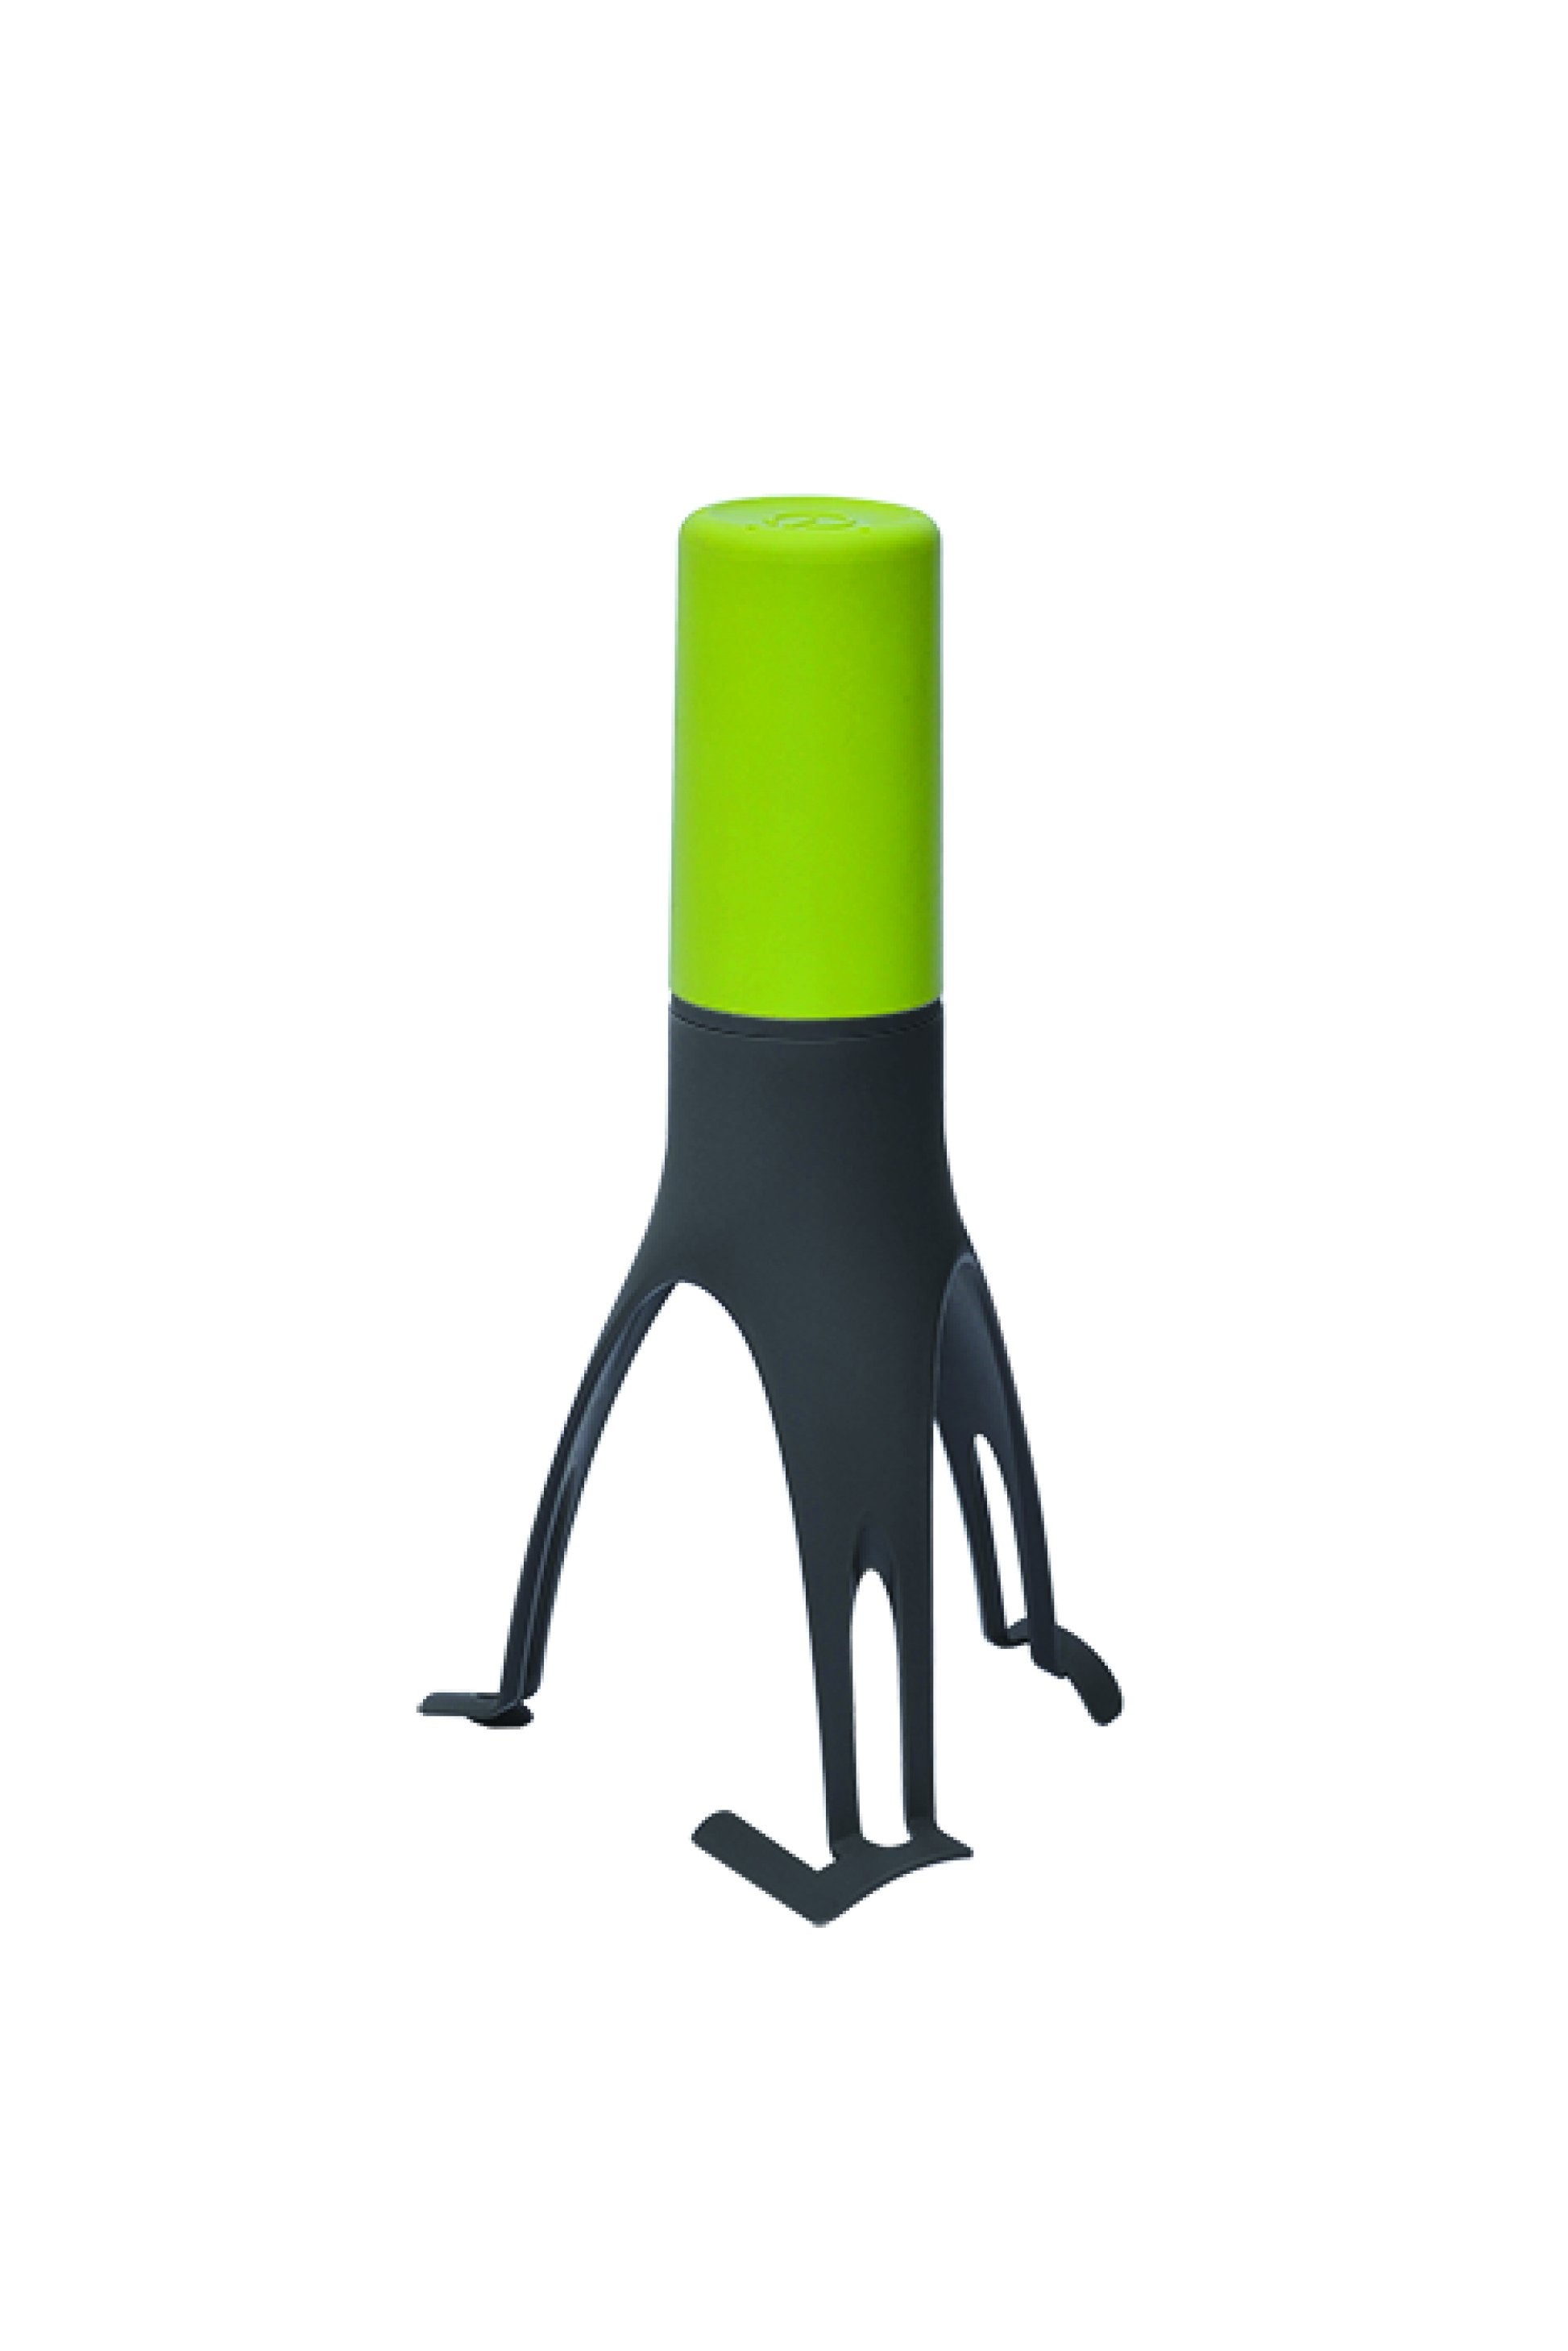 Black kitchen gadget standing upright on three legs, with bright, light green handle at top.